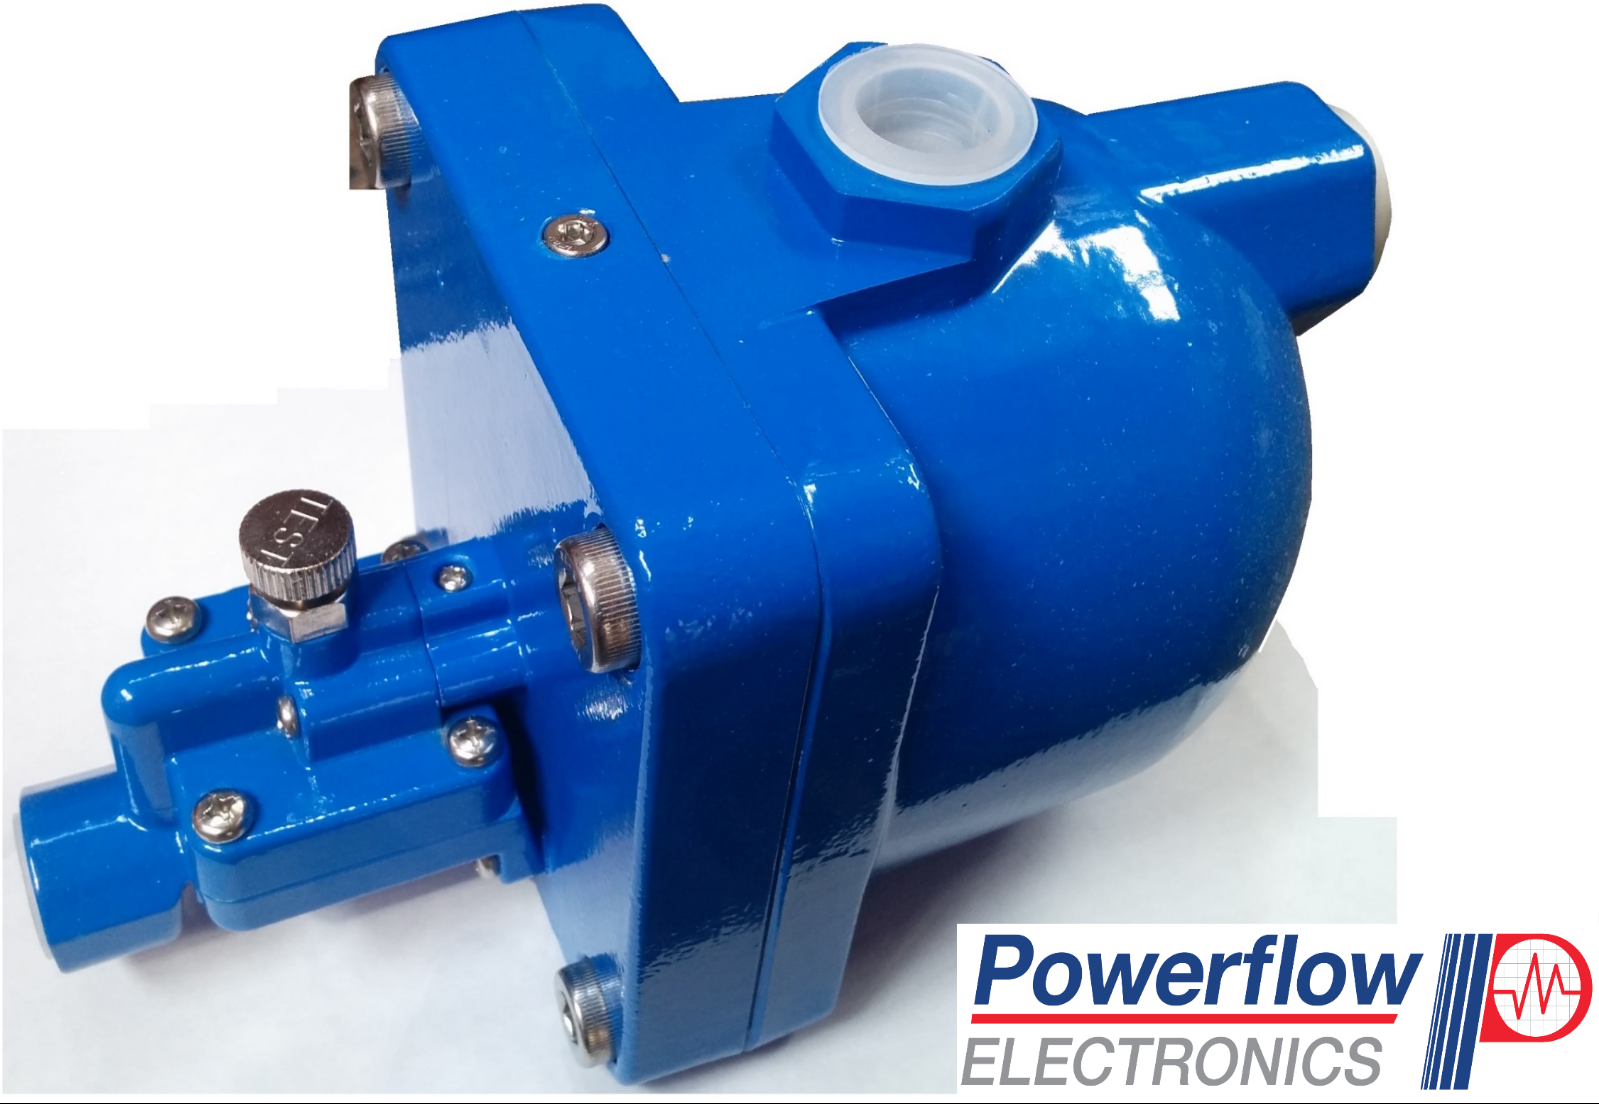 Powerflow Mechanical No Loss Drain